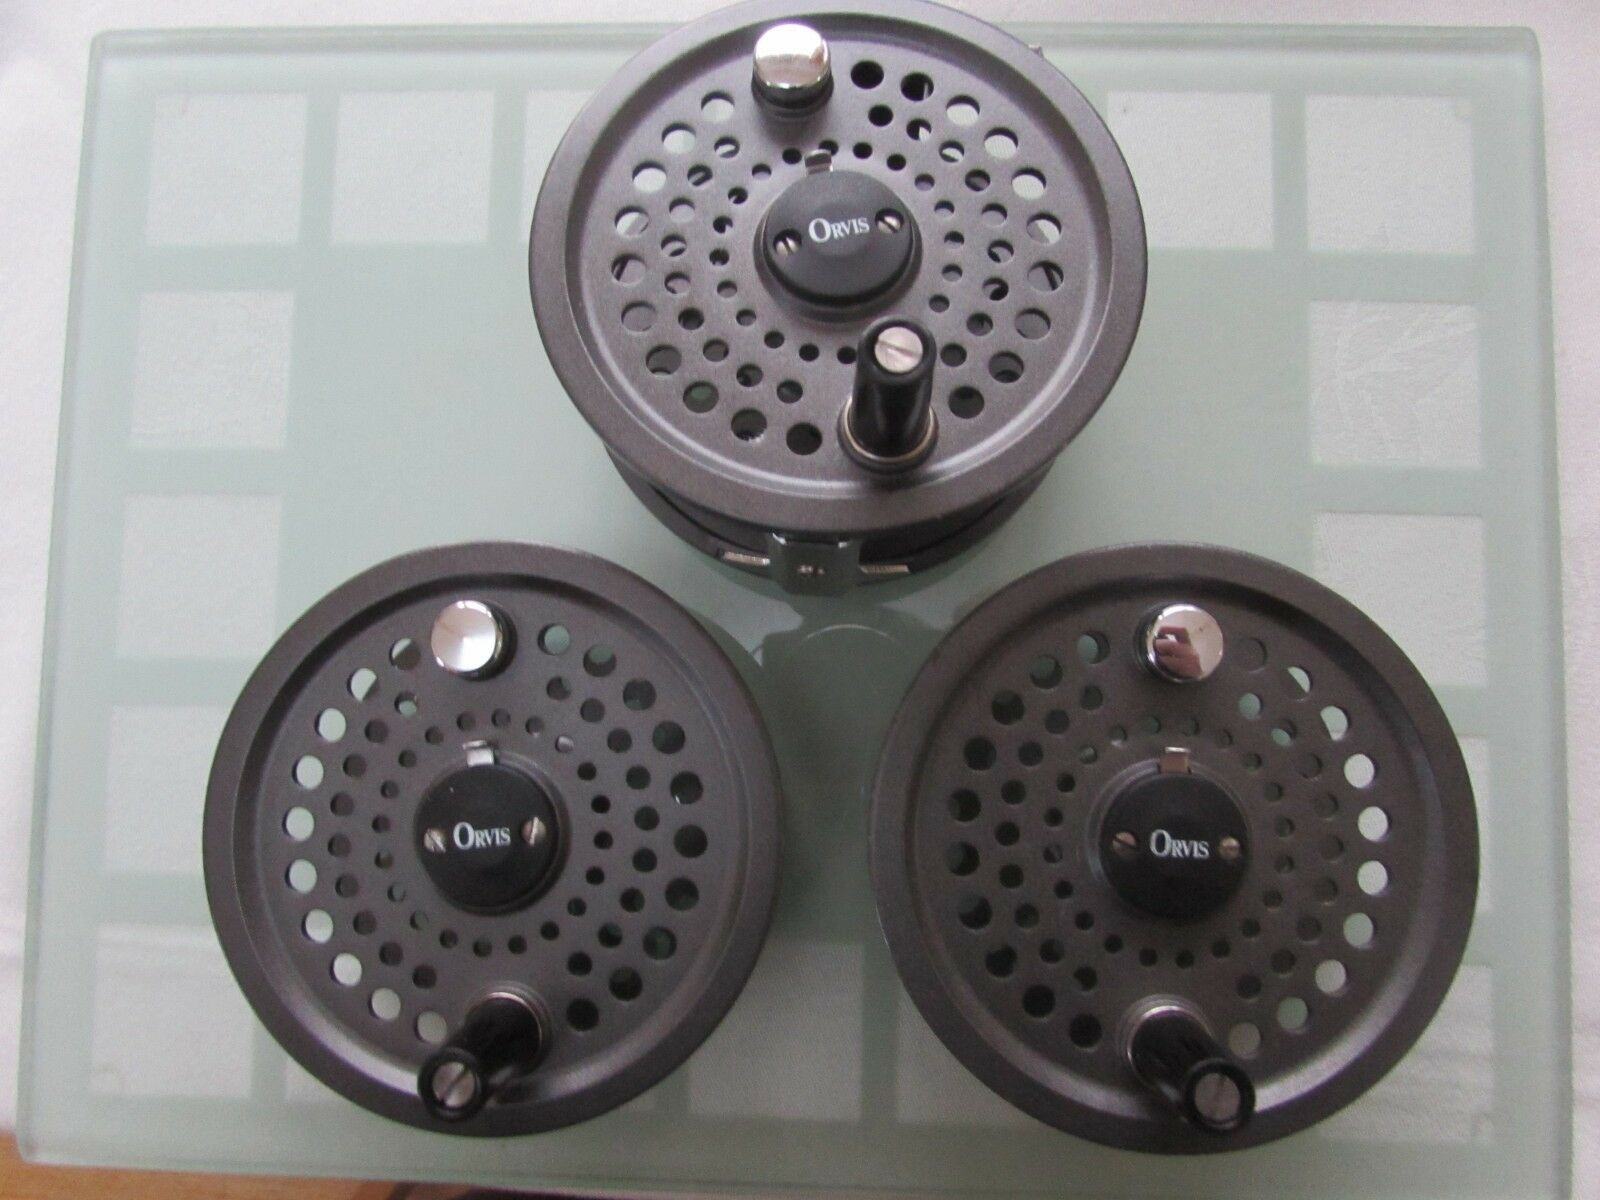 Stunning orvis battenkill disc england 8  9 trout fly fishing reel & 2 spools  the newest